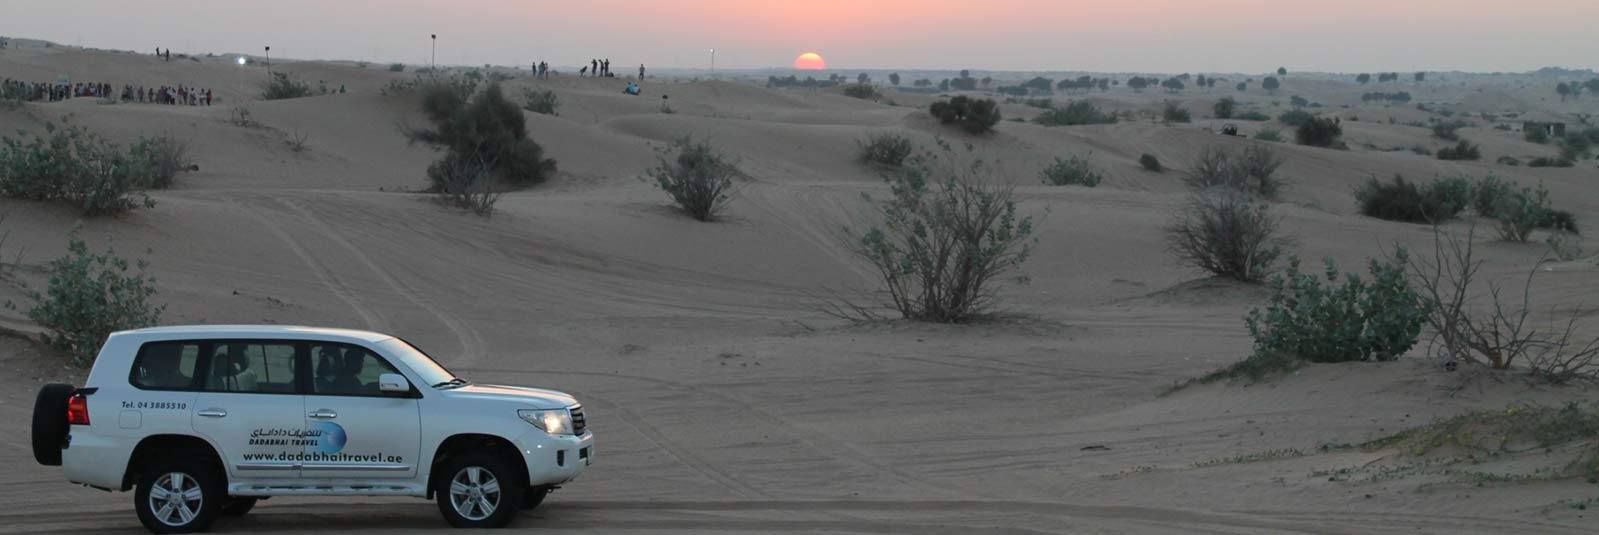 evening-desert-safari